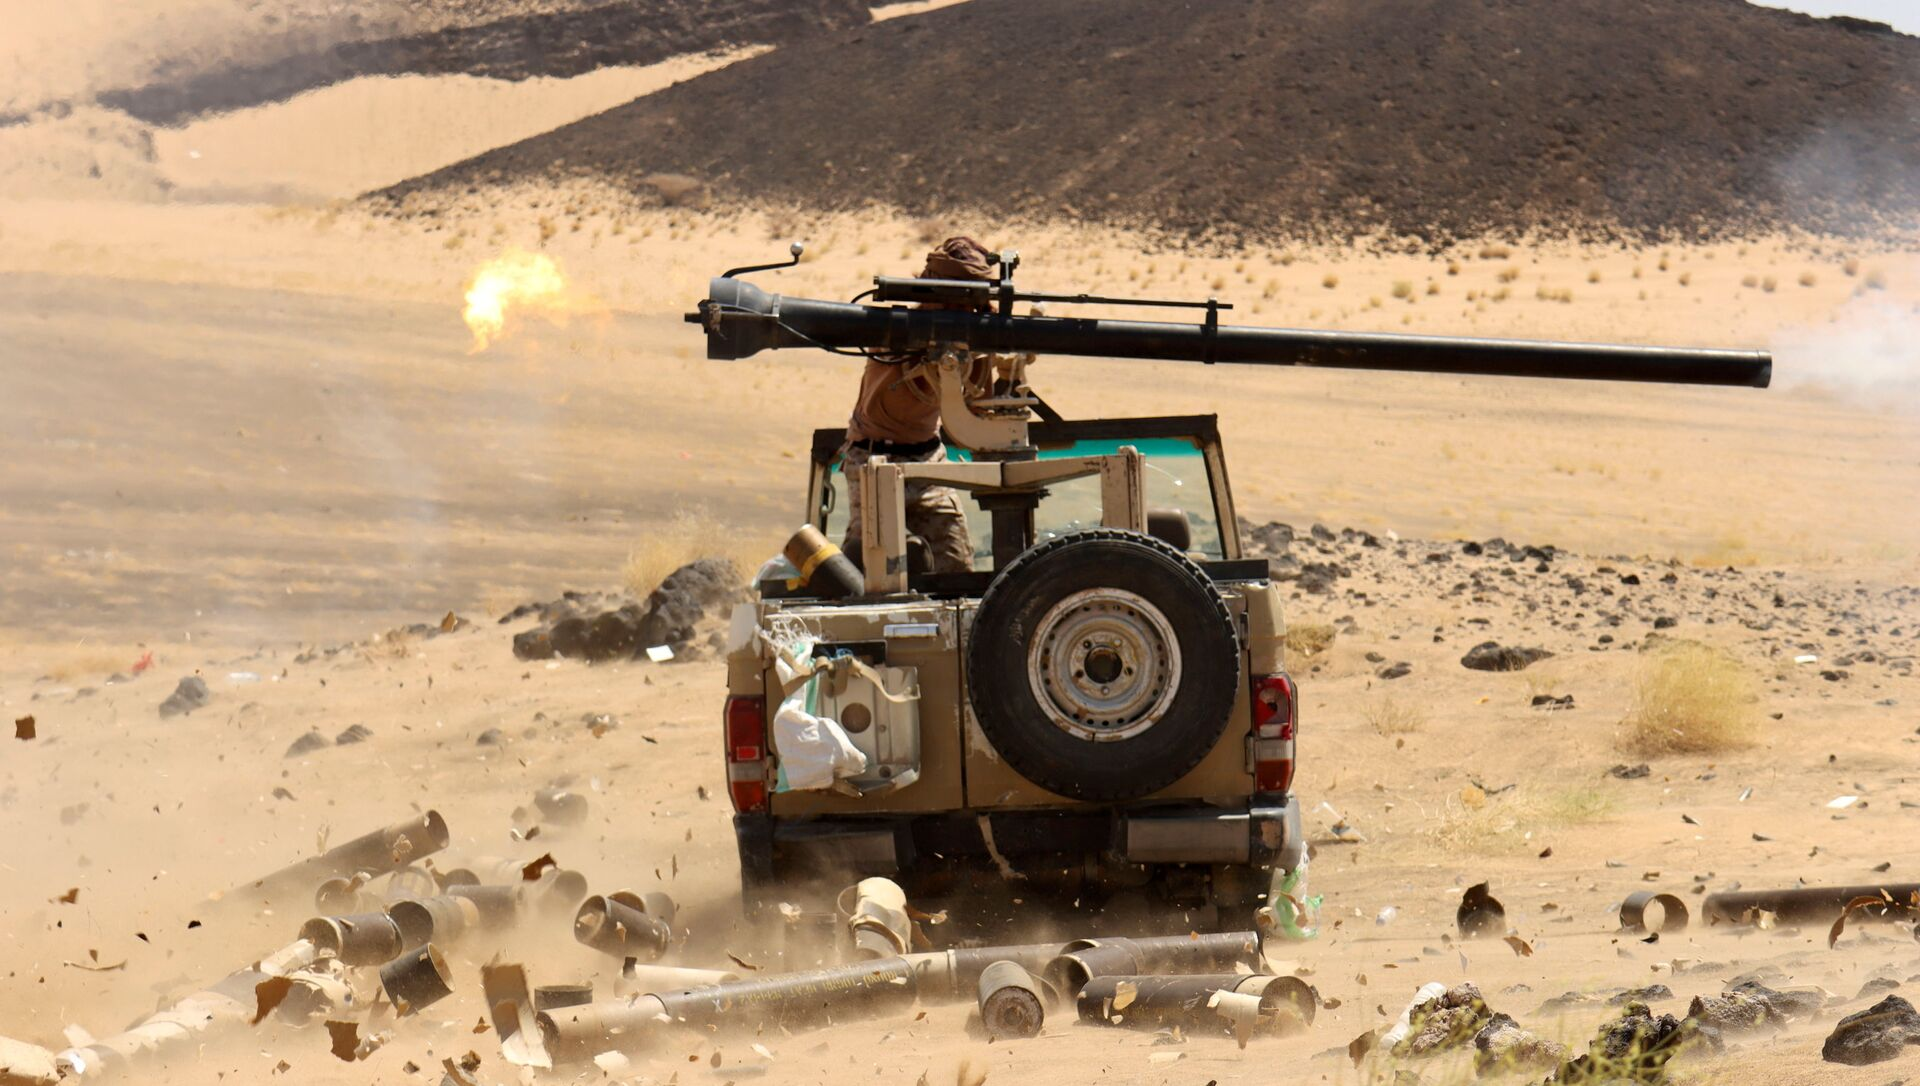 A Yemeni government fighter fires a vehicle-mounted weapon at a frontline position during fighting against Houthi fighters in Marib, Yemen March 9, 2021 - Sputnik International, 1920, 28.07.2021